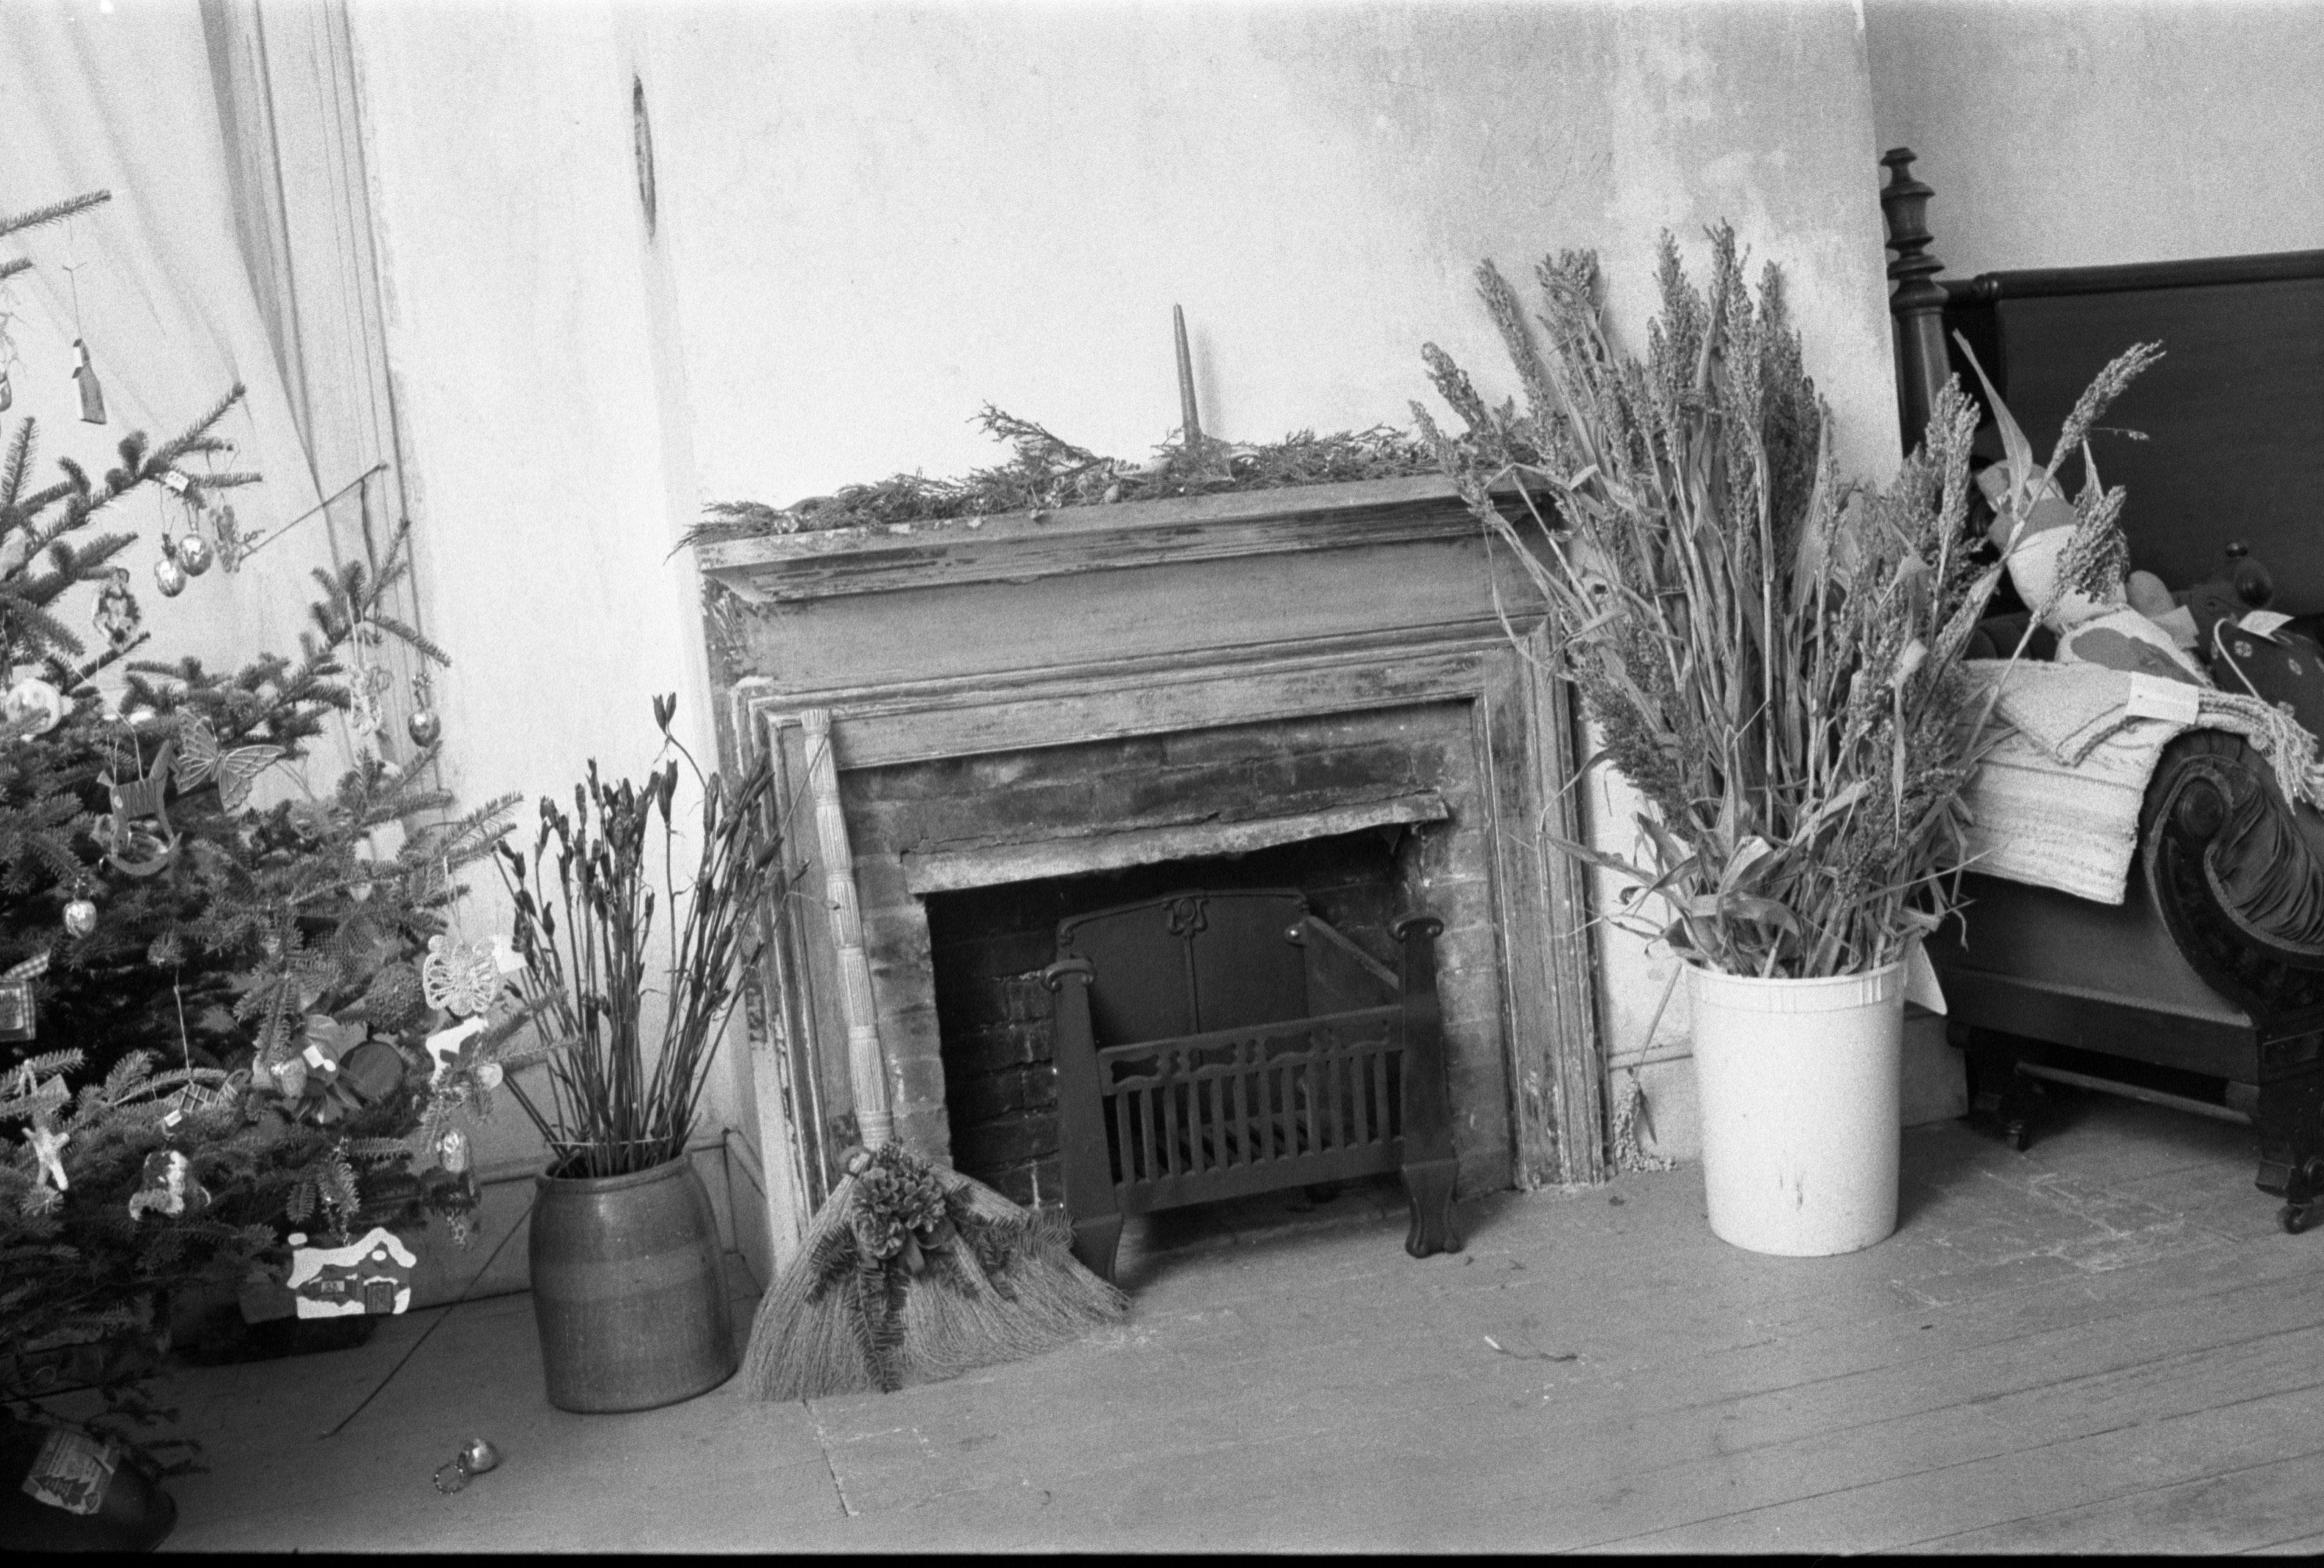 Christmas Decorations Around A Fireplace At Cobblestone Farmhouse, December 22, 1980 image